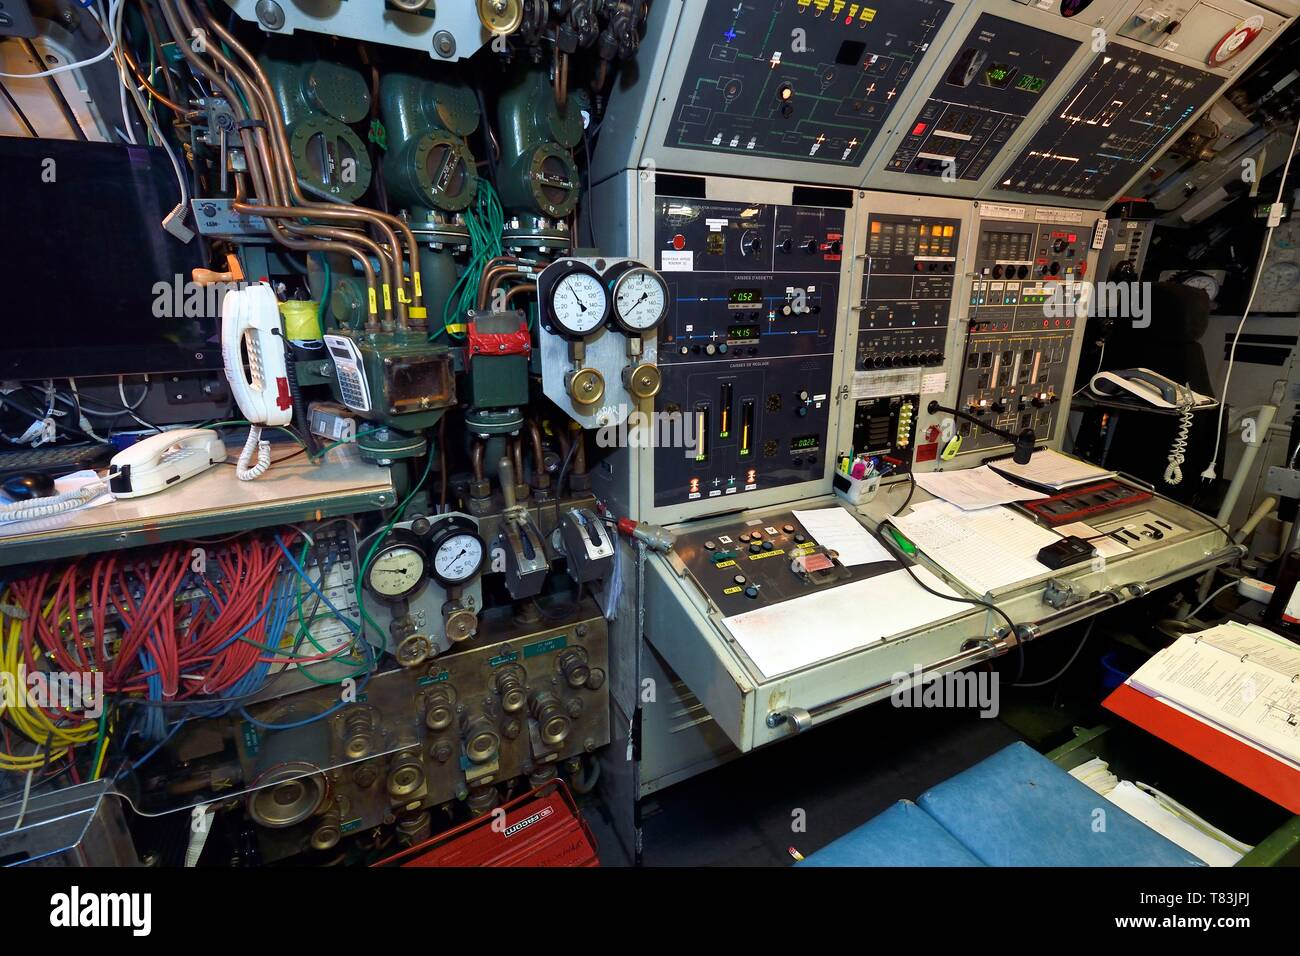 France, Var, Toulon, the naval base (Arsenal), nuclear attack submarine (SNA) Rubis type, central navigation and operation room Stock Photo